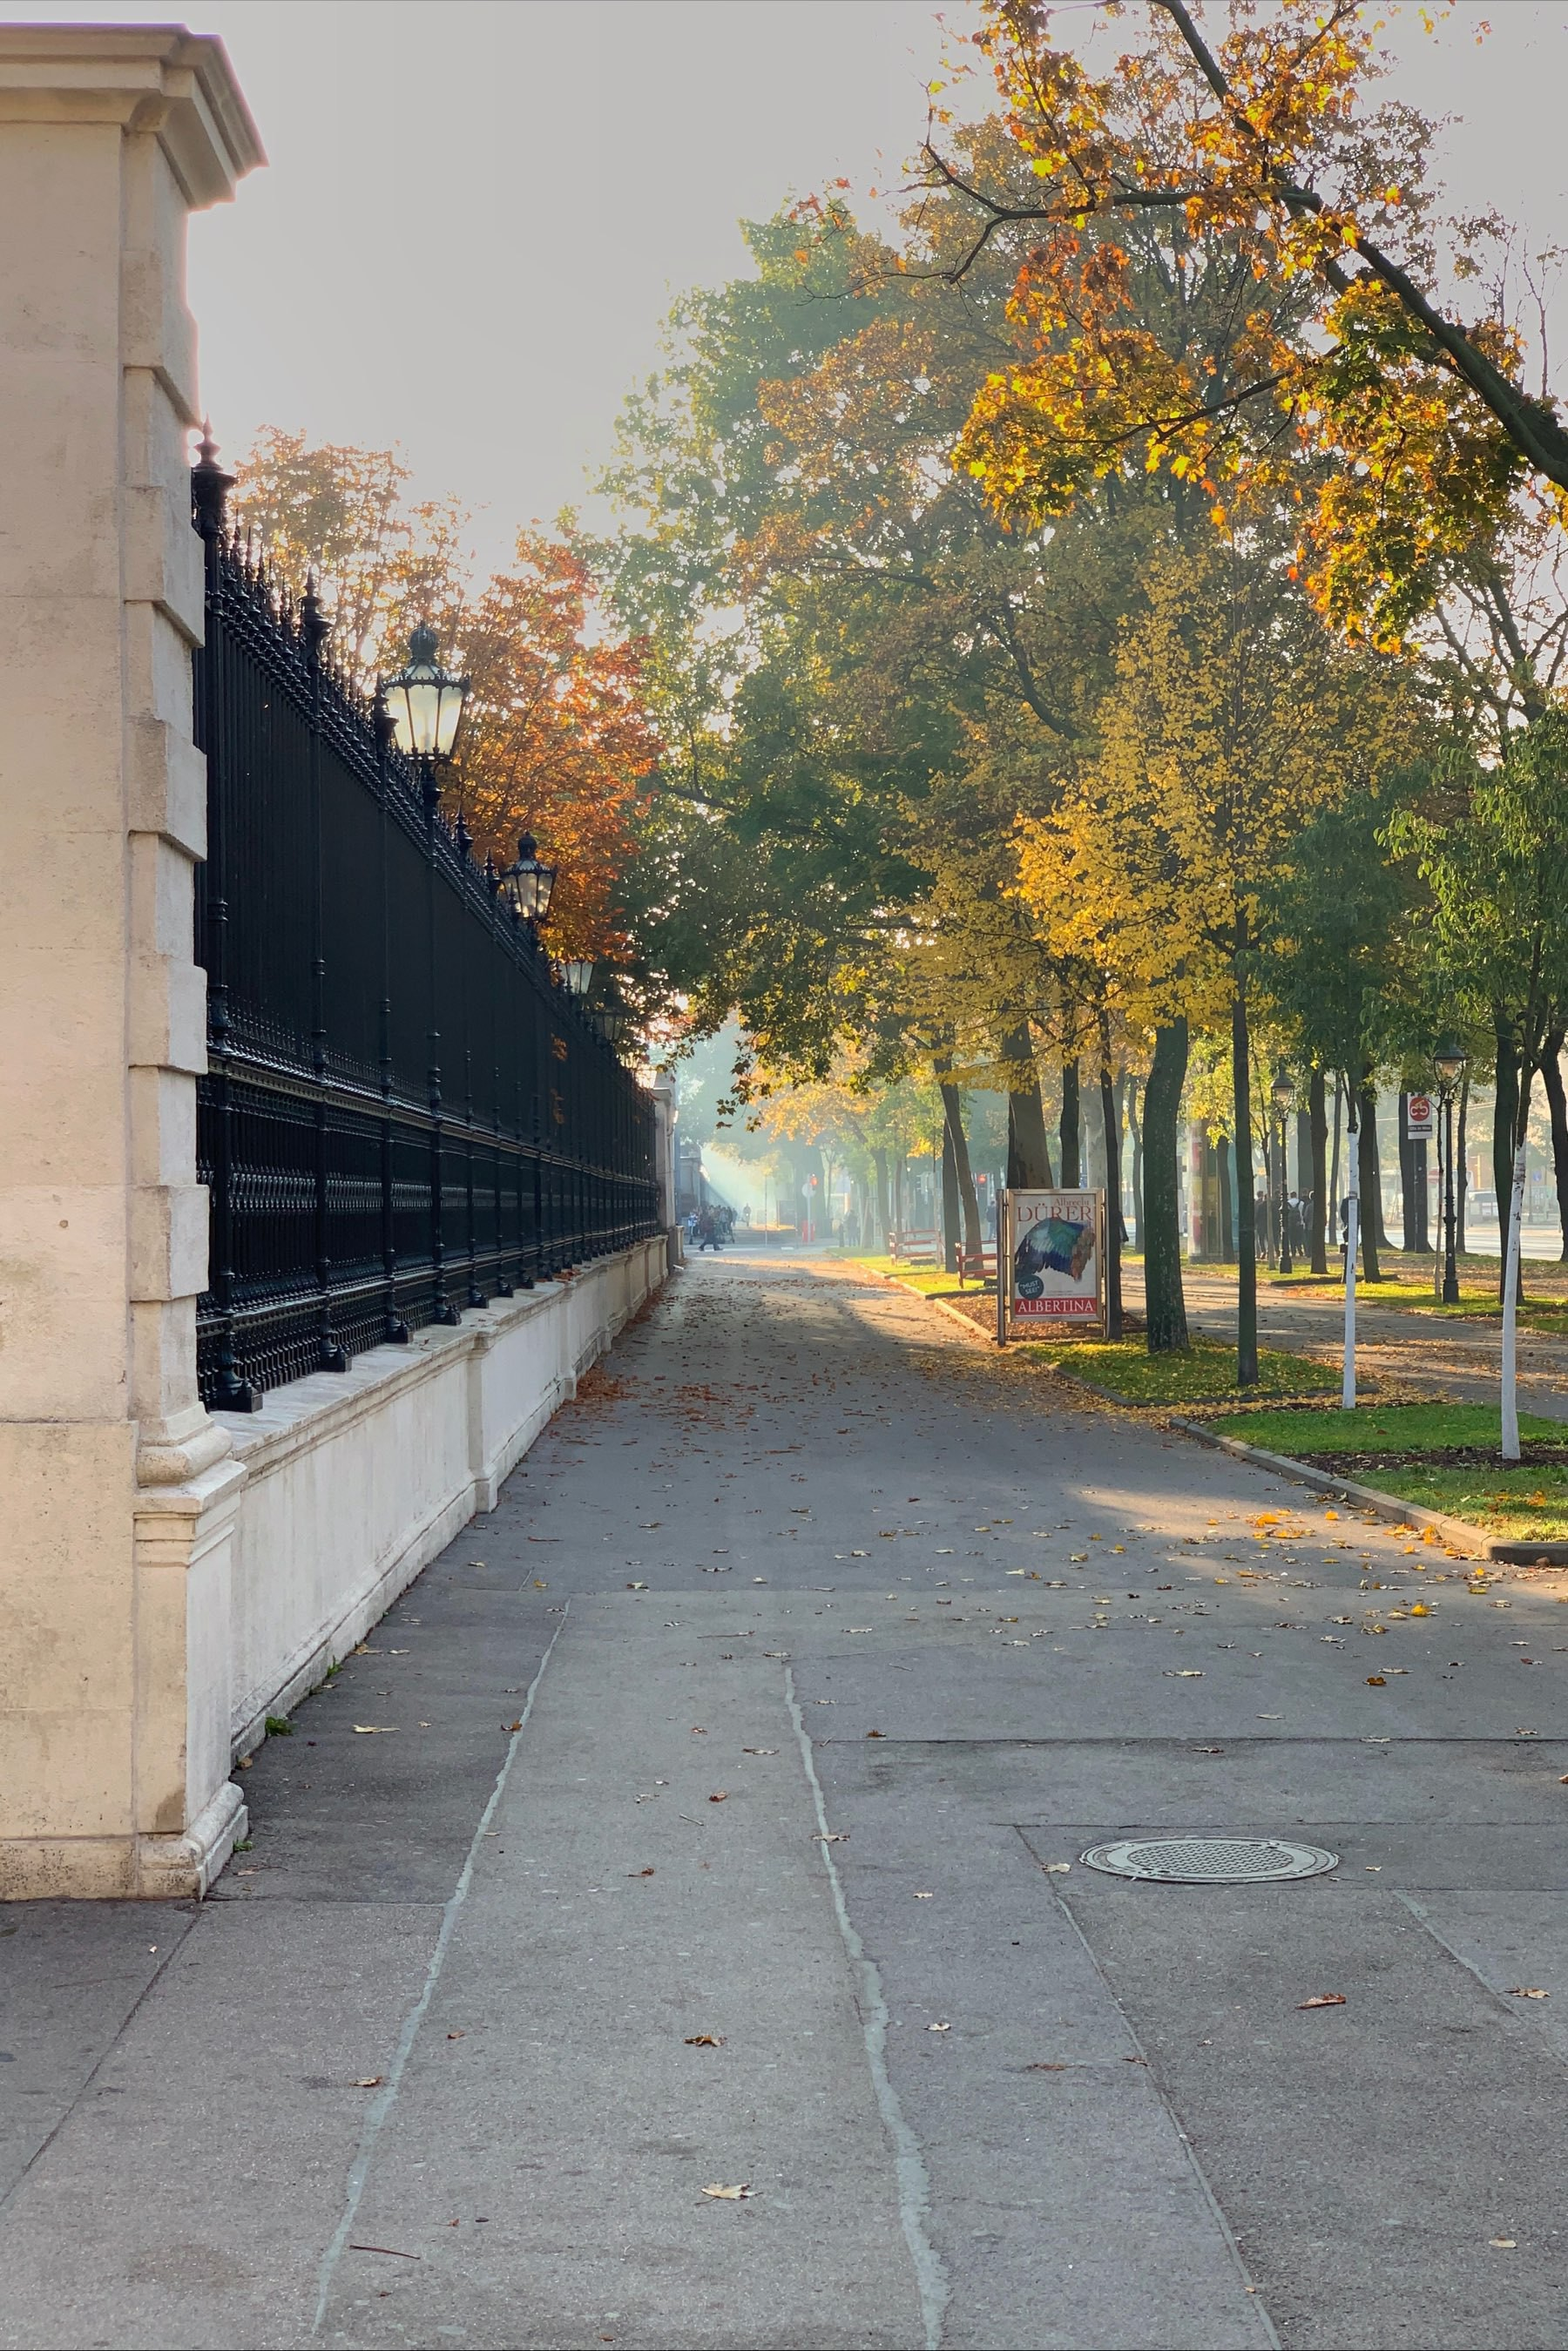 empty sidewalks with trees on the right side, a fence on the left side and a lot of light